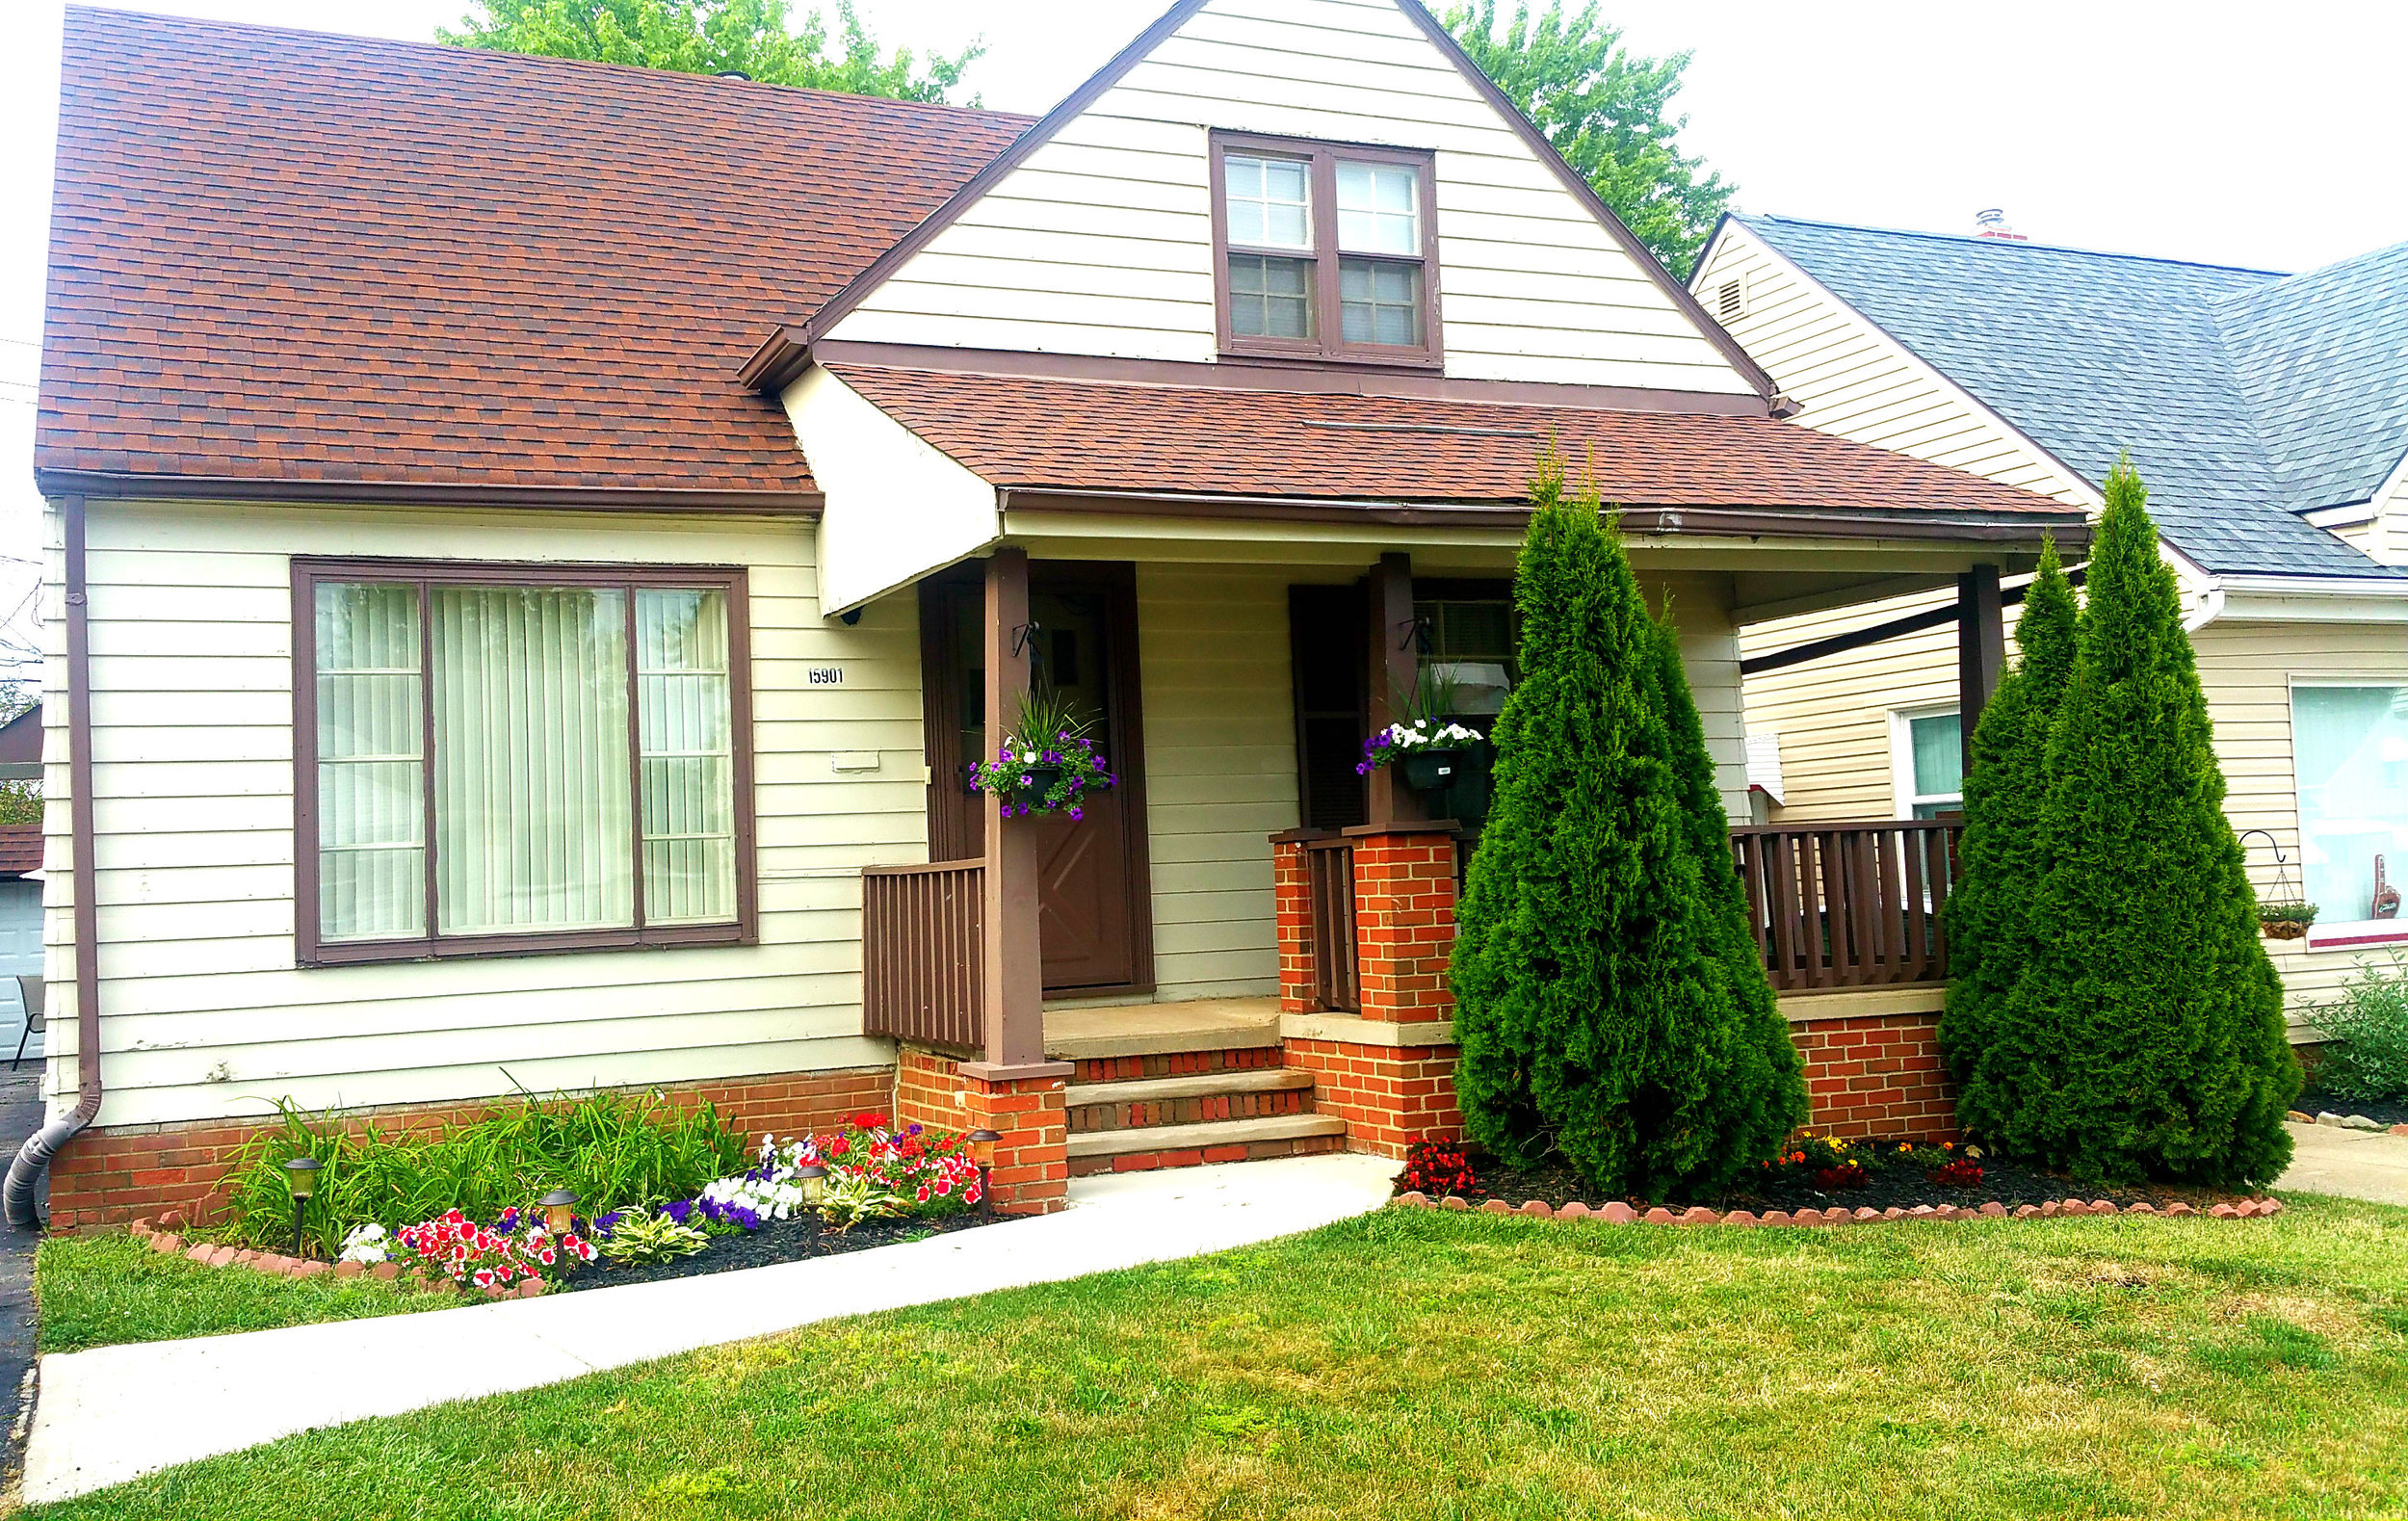 15901 Edgewood Ave., Maple Hts. | 3 bed 1 bath | 1,479 Sq. Ft. | $45,500